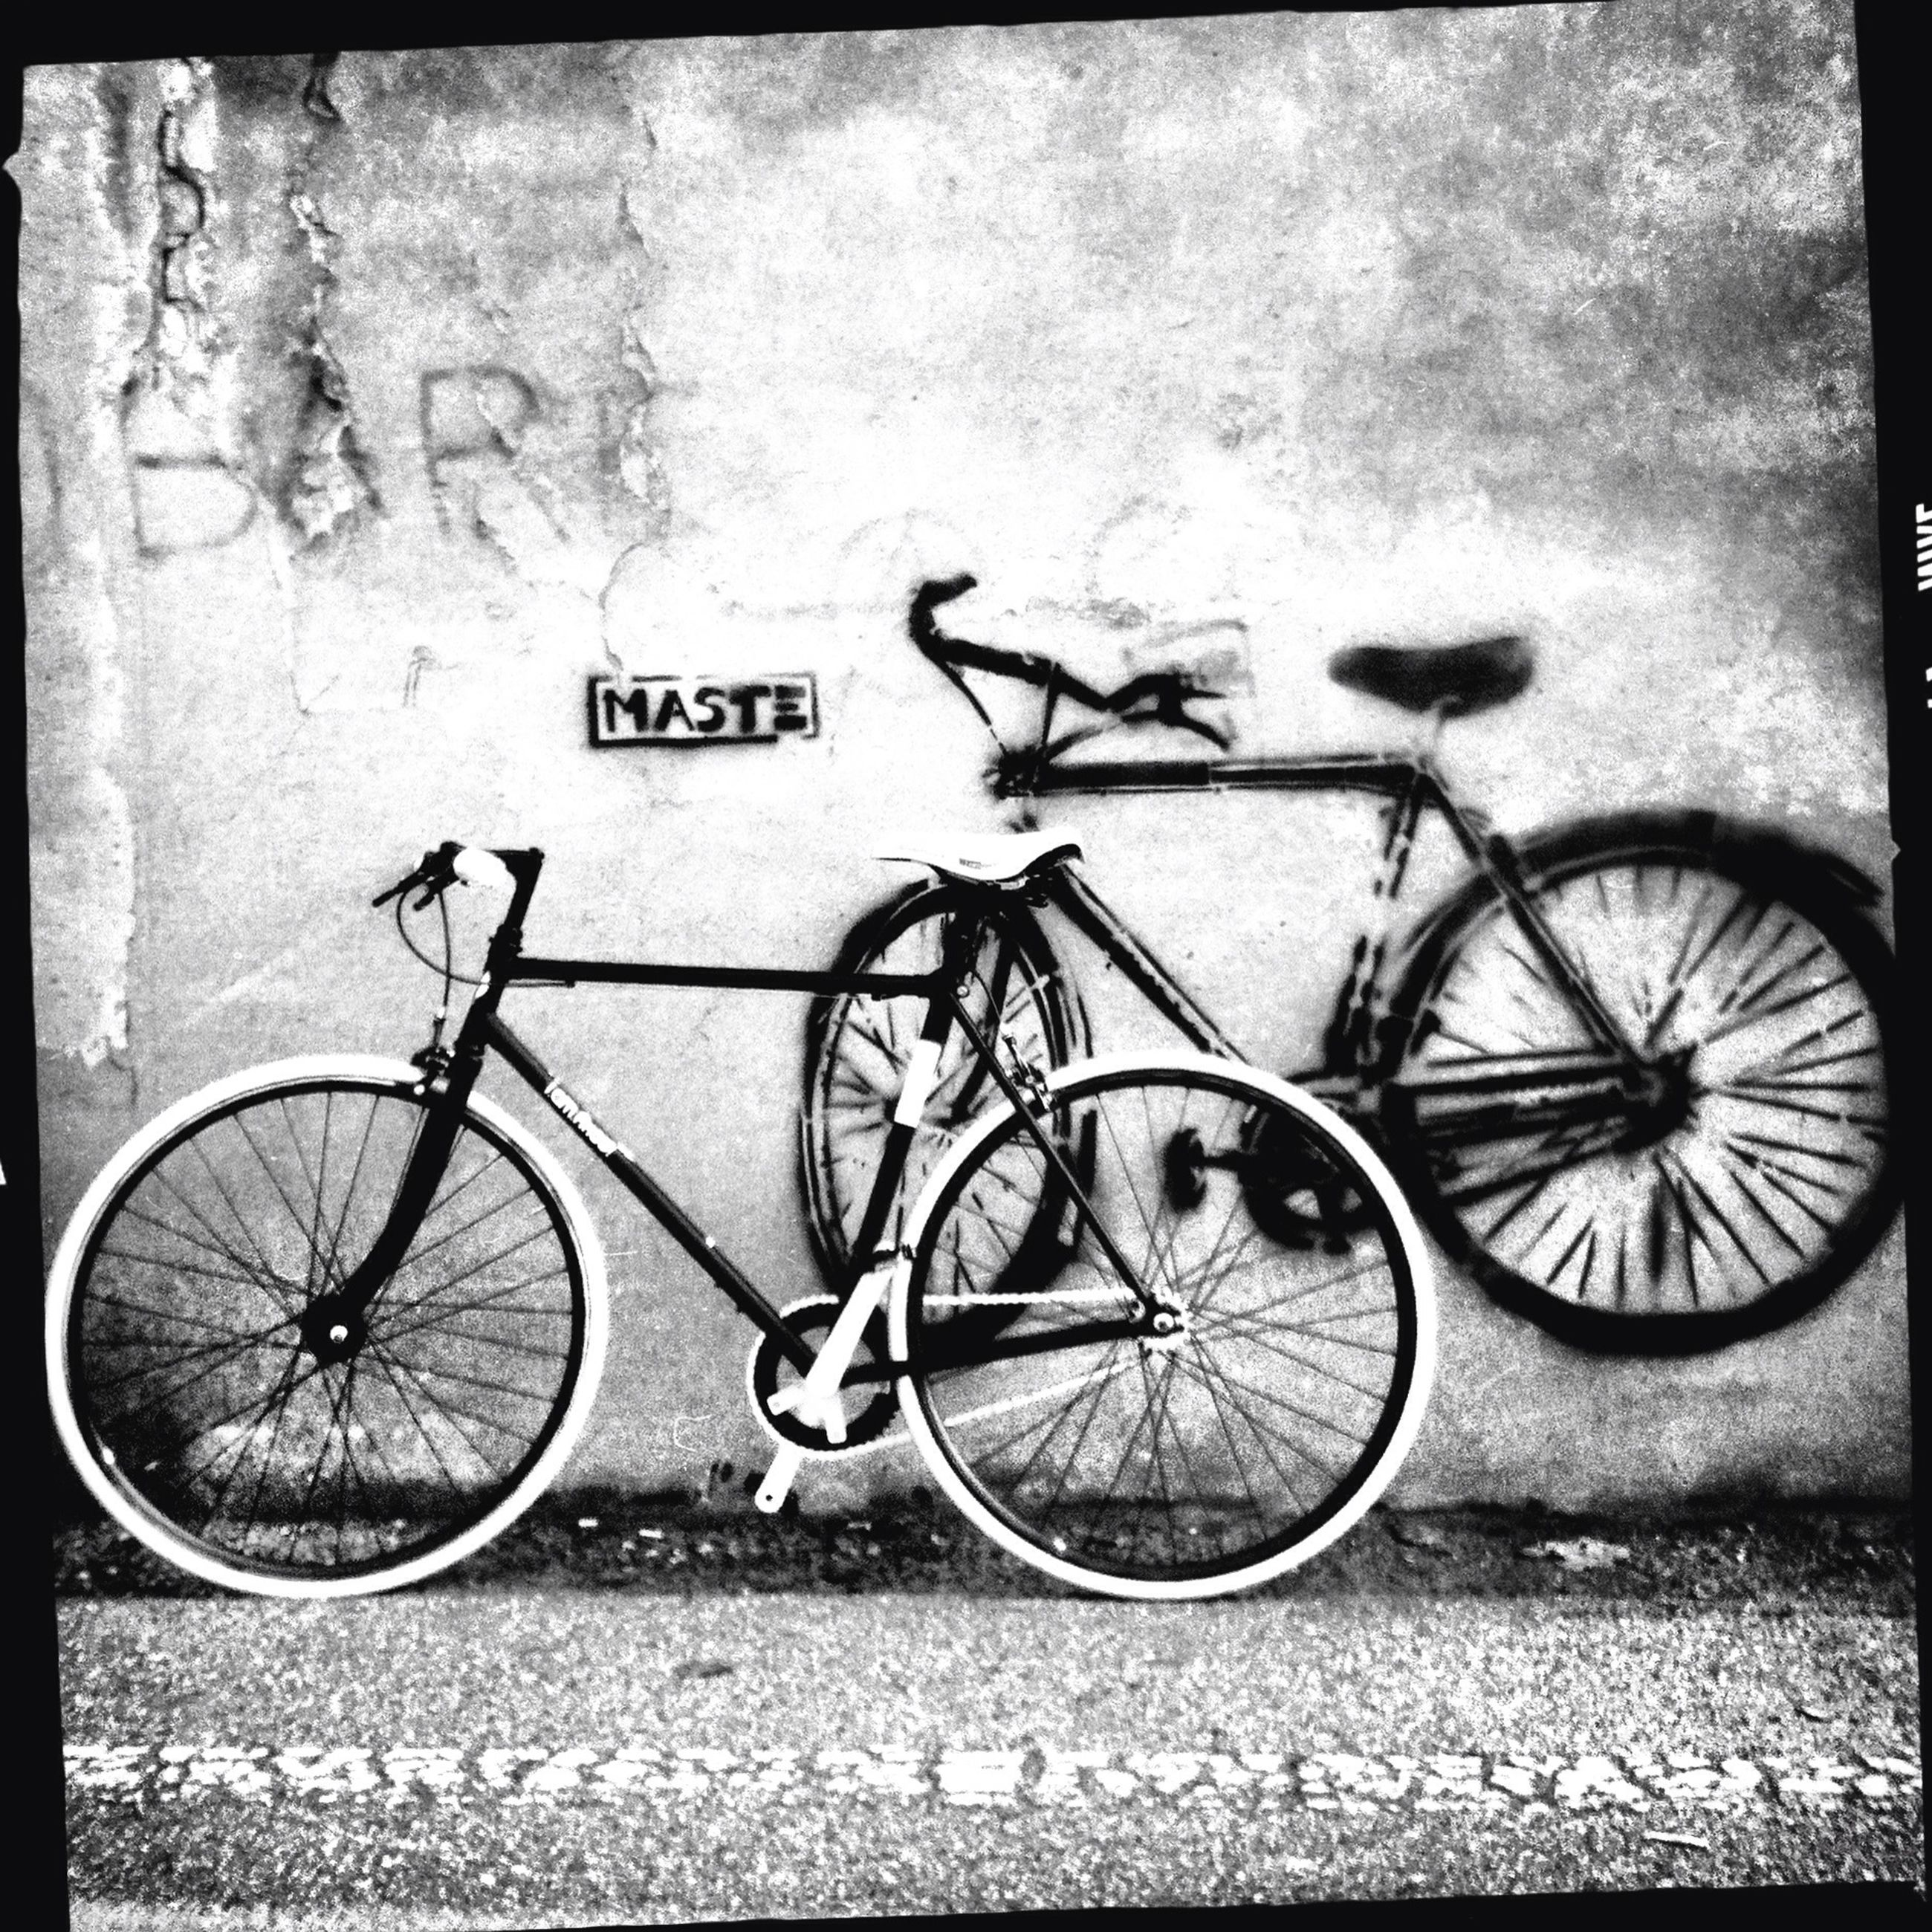 bicycle, transportation, mode of transport, land vehicle, text, stationary, wall - building feature, parking, parked, transfer print, western script, auto post production filter, communication, wall, street, wheel, graffiti, outdoors, day, no people